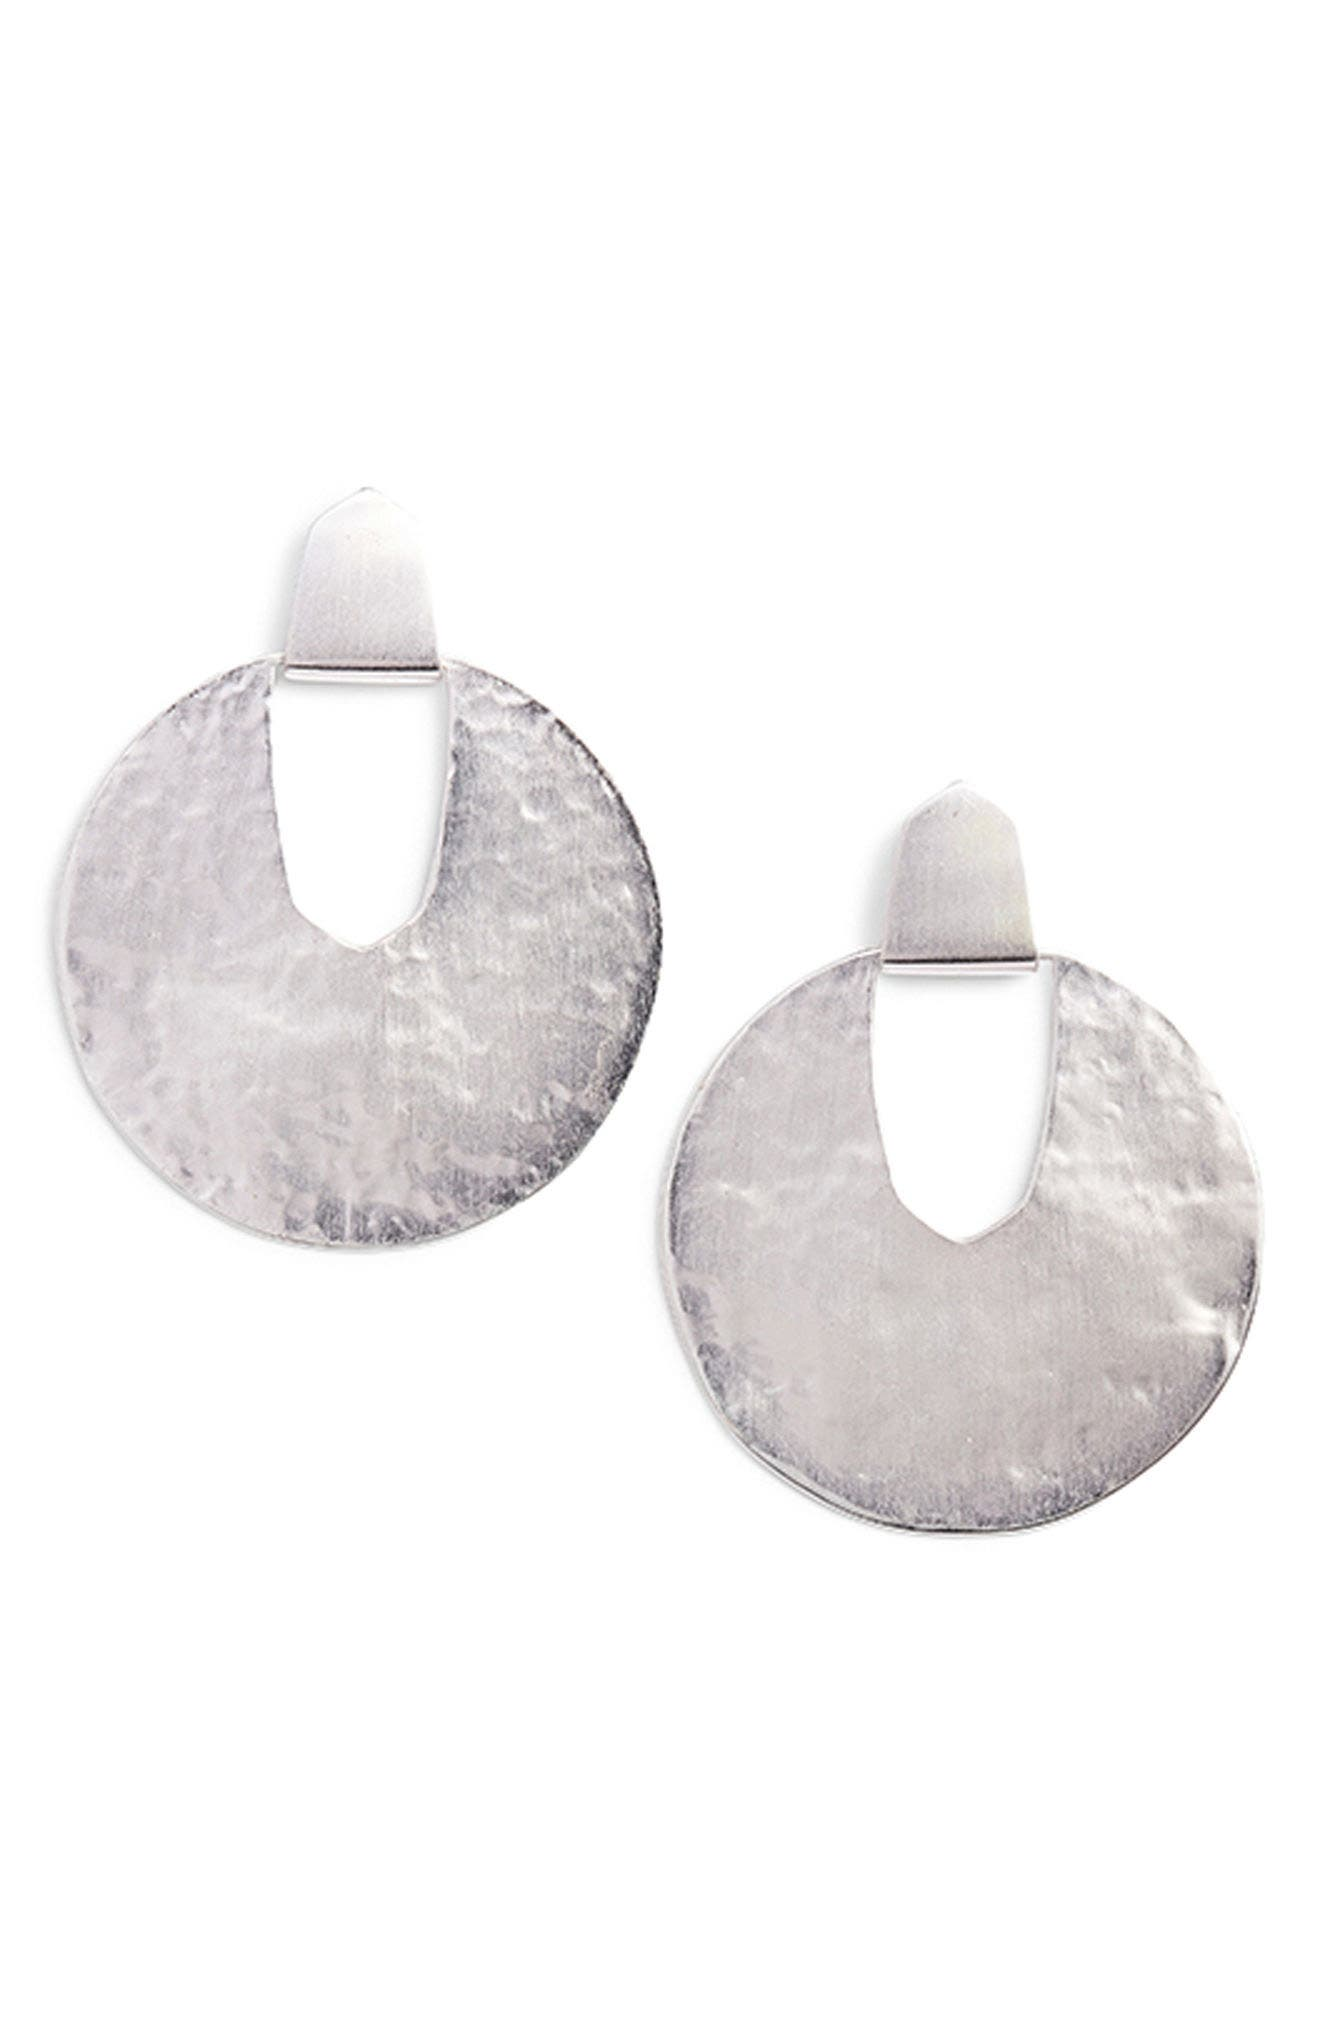 Diane Drop Earrings,                             Alternate thumbnail 4, color,                             BRIGHT SILVER